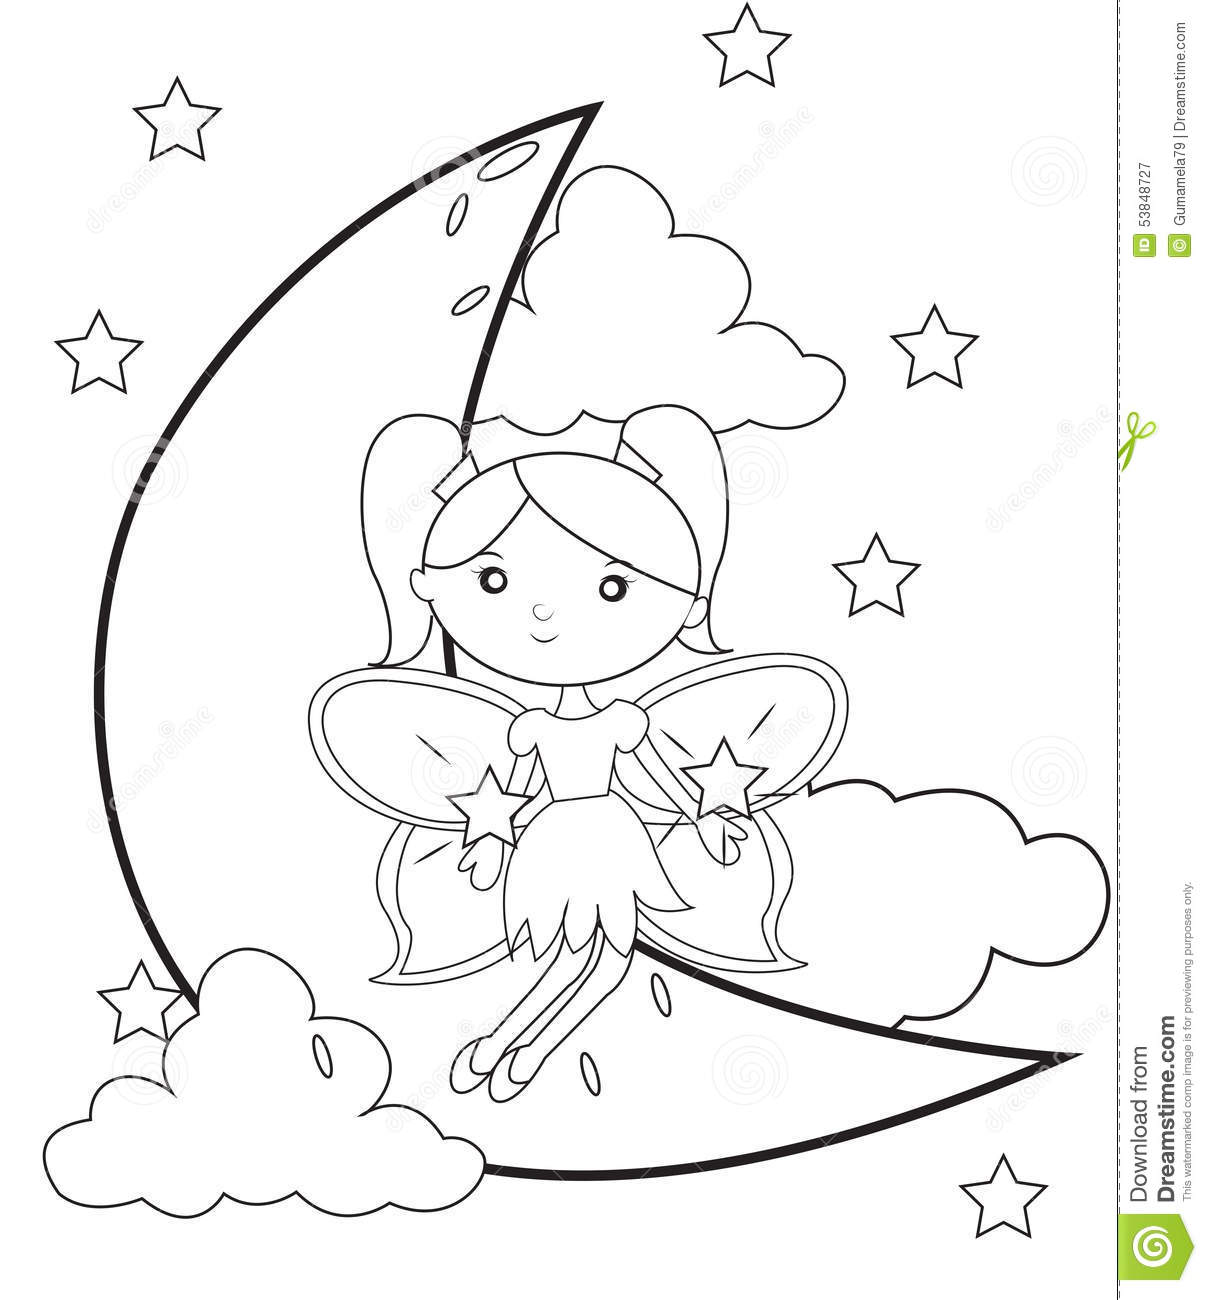 Moon coloring pages for preschoolers - Royalty Free Illustration Download Fairy On The Moon Coloring Page